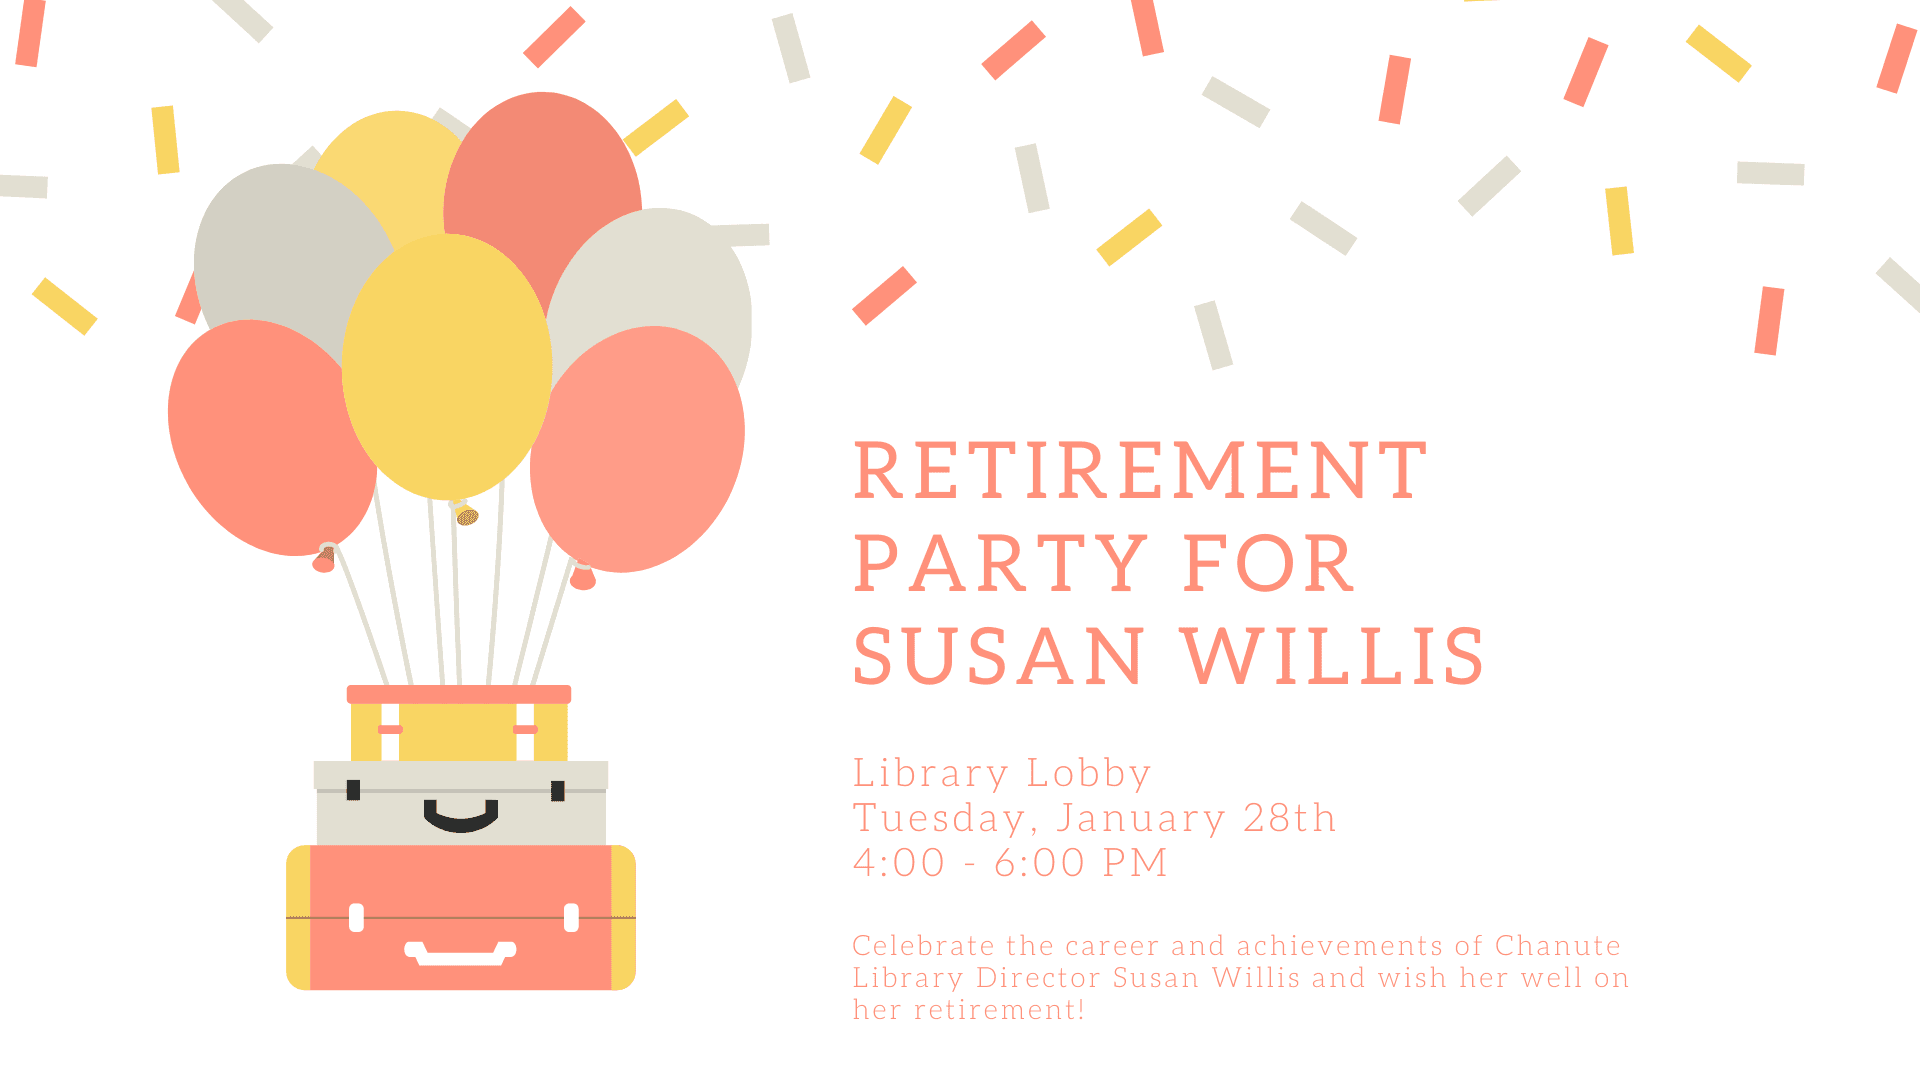 retirement party fb cover